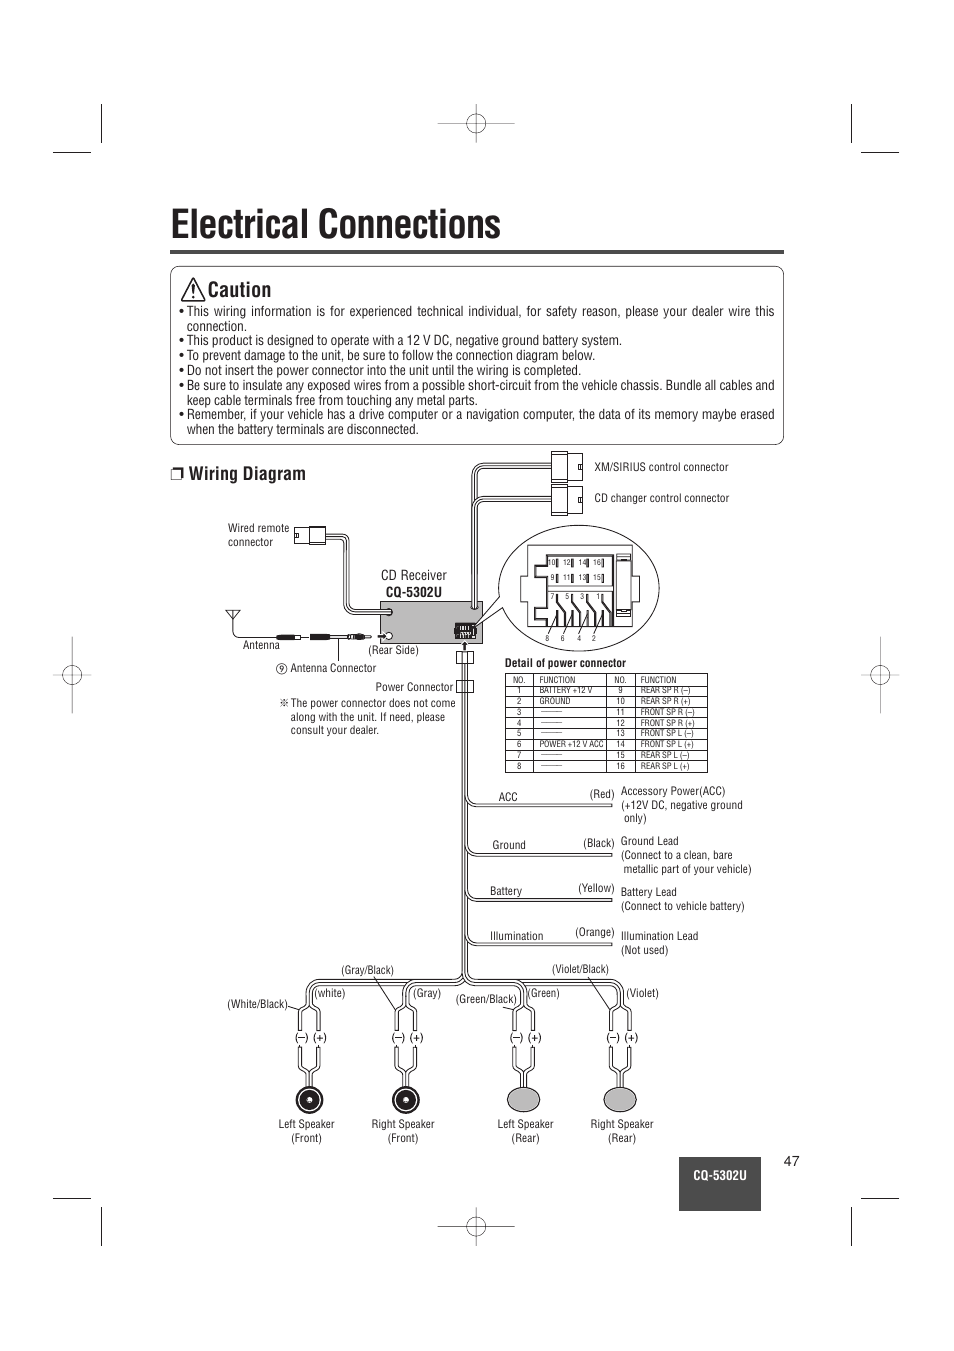 medium resolution of electrical connections caution wiring diagram panasonic cq 5302u wiring diagram ac panasonic electrical connections